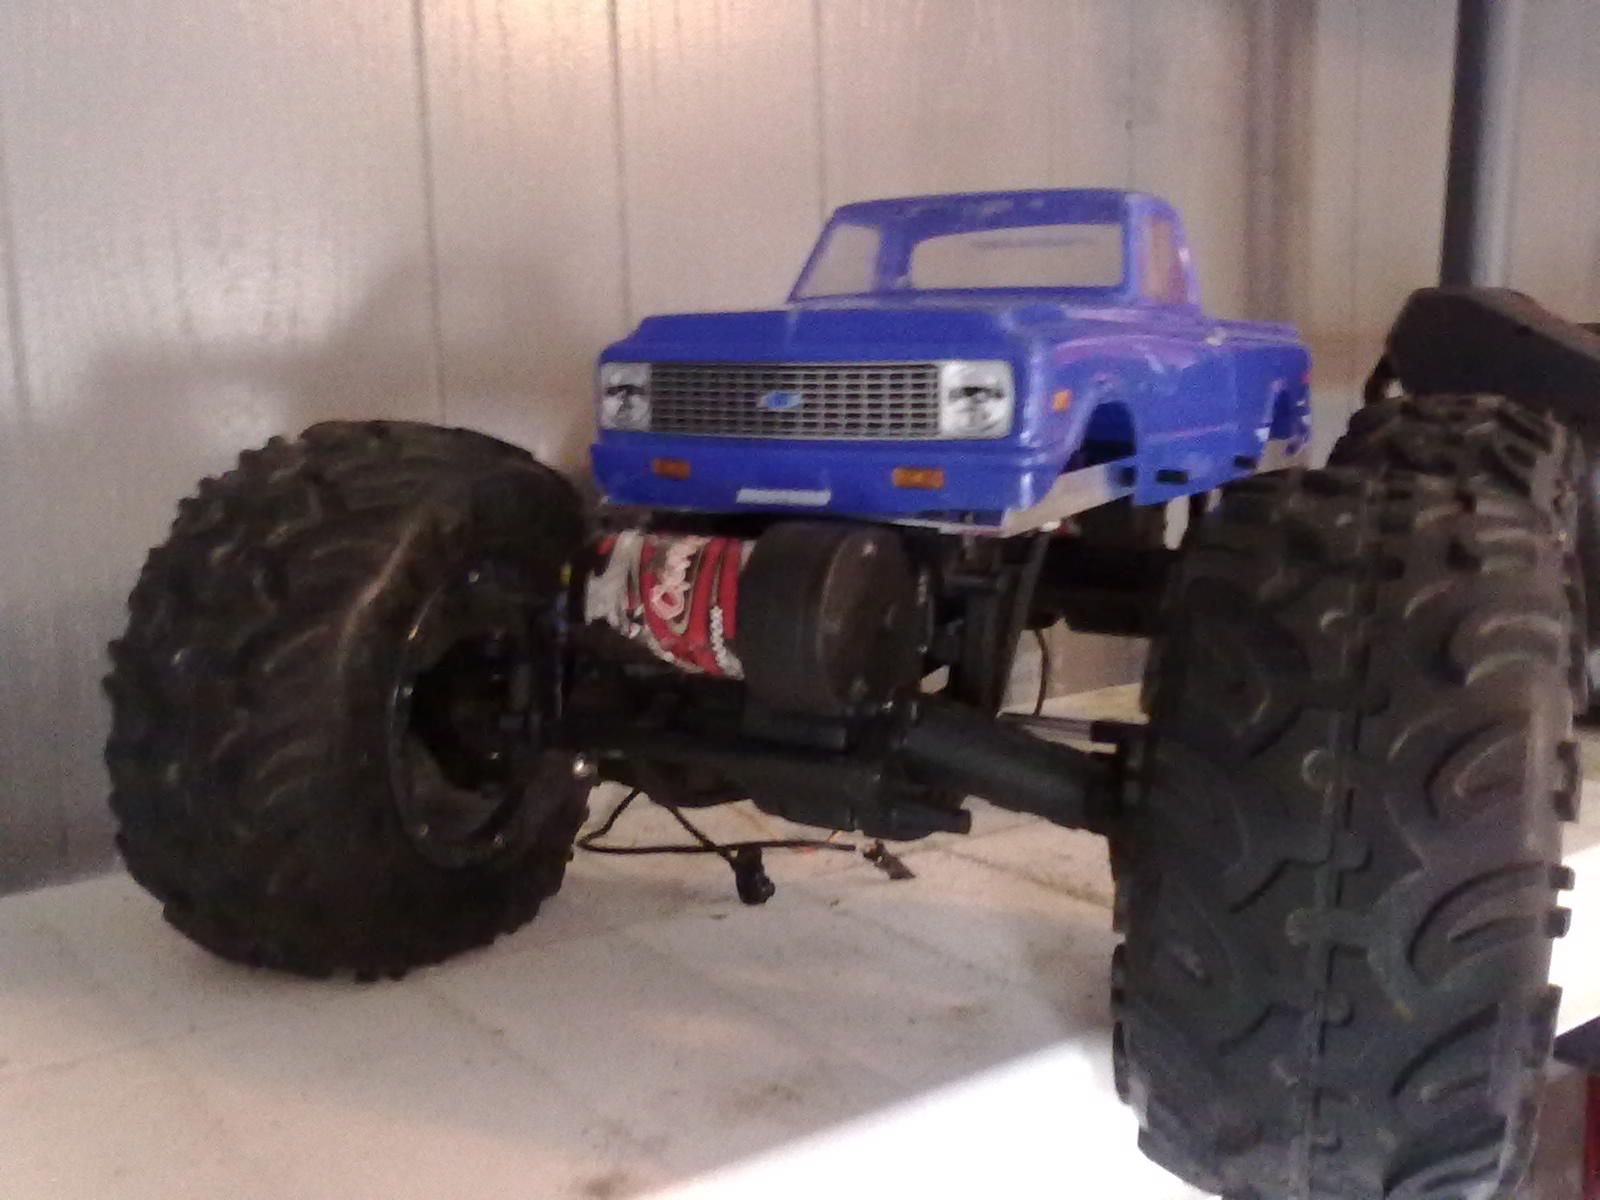 redcat rockslide 1/8 custom chassis (With images